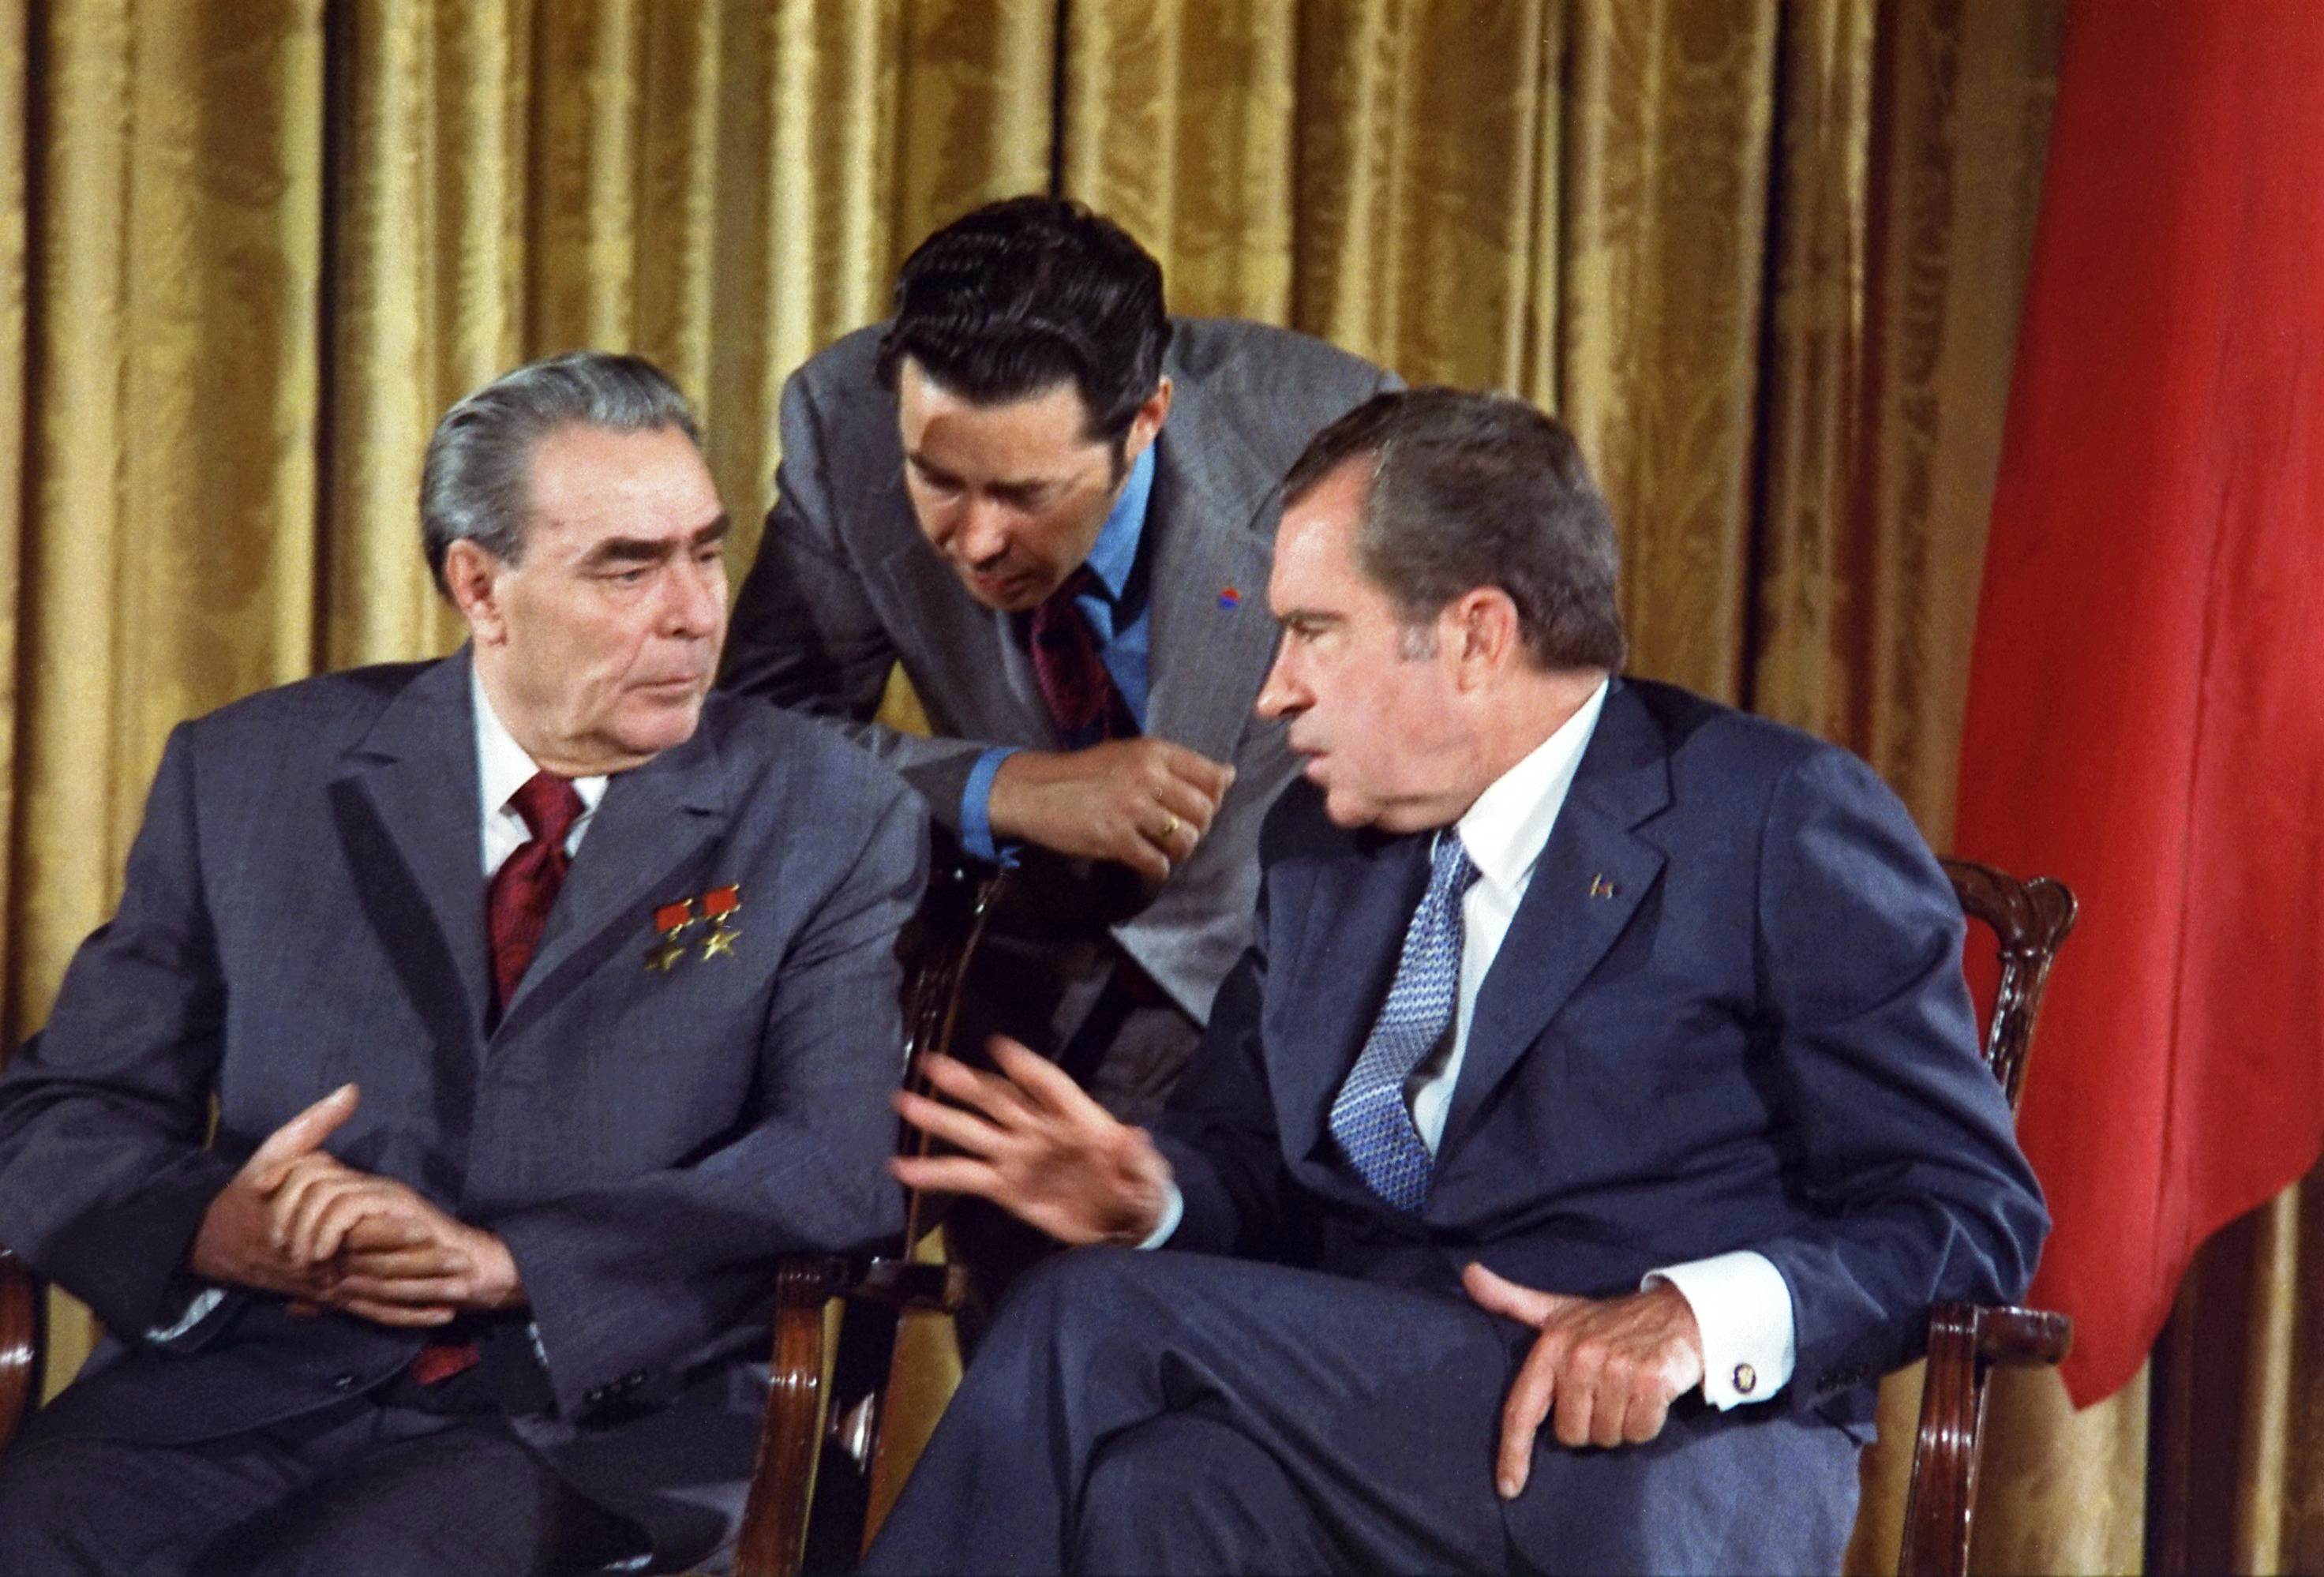 https://upload.wikimedia.org/wikipedia/commons/c/c8/Leonid_Brezhnev_and_Richard_Nixon_talks_in_1973.png